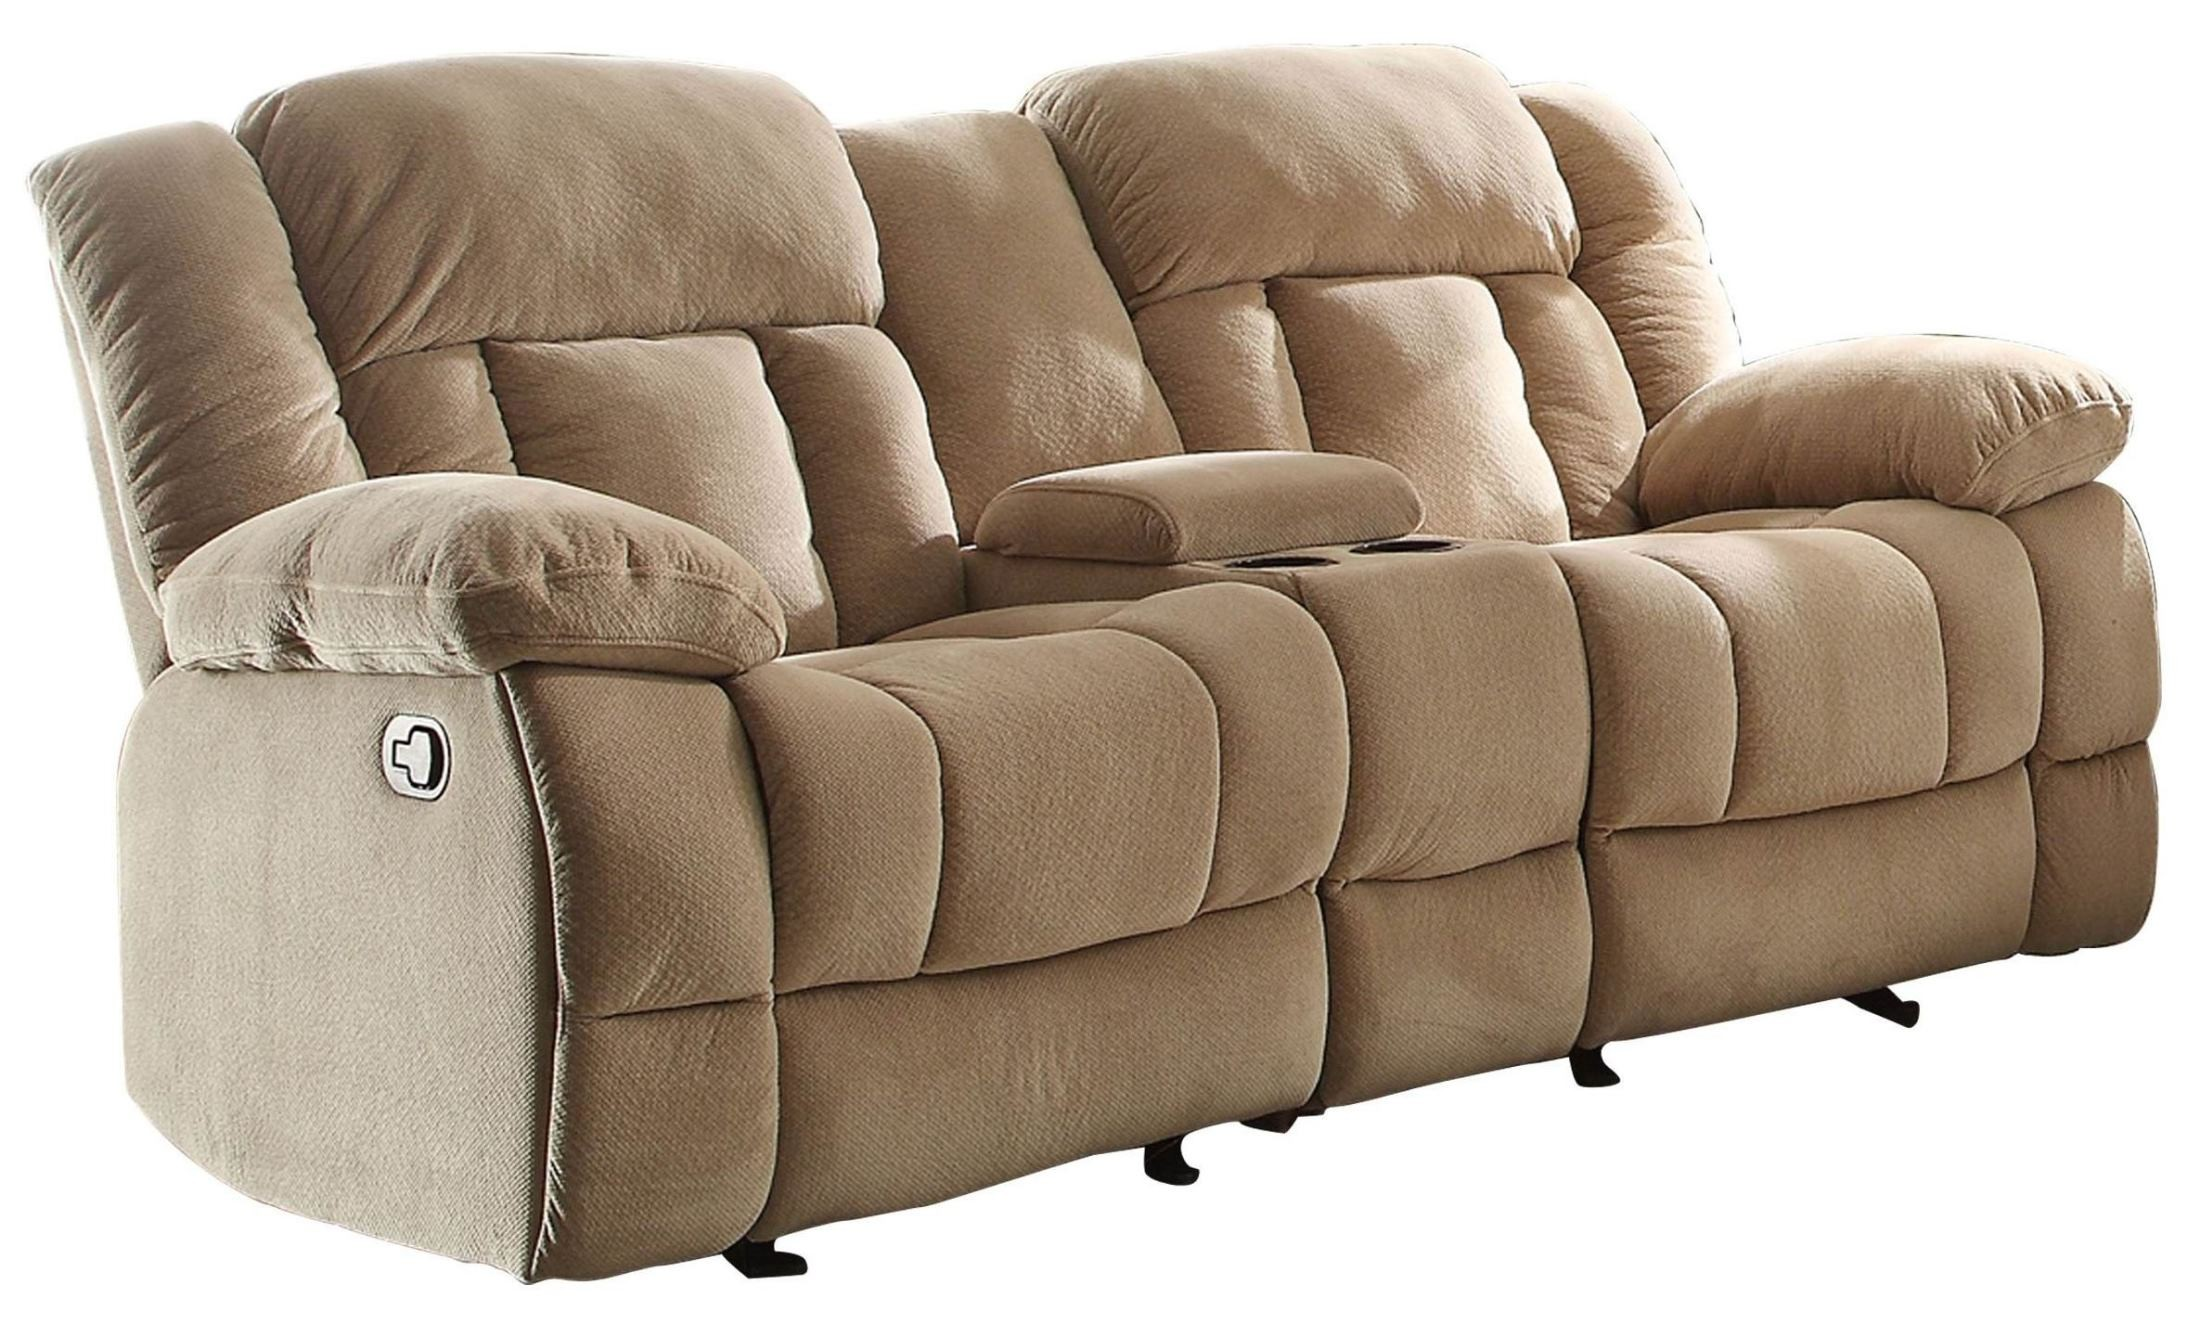 double recliner chairs with cup holders navana revolving chair laurelton taupe glider reclining loveseat